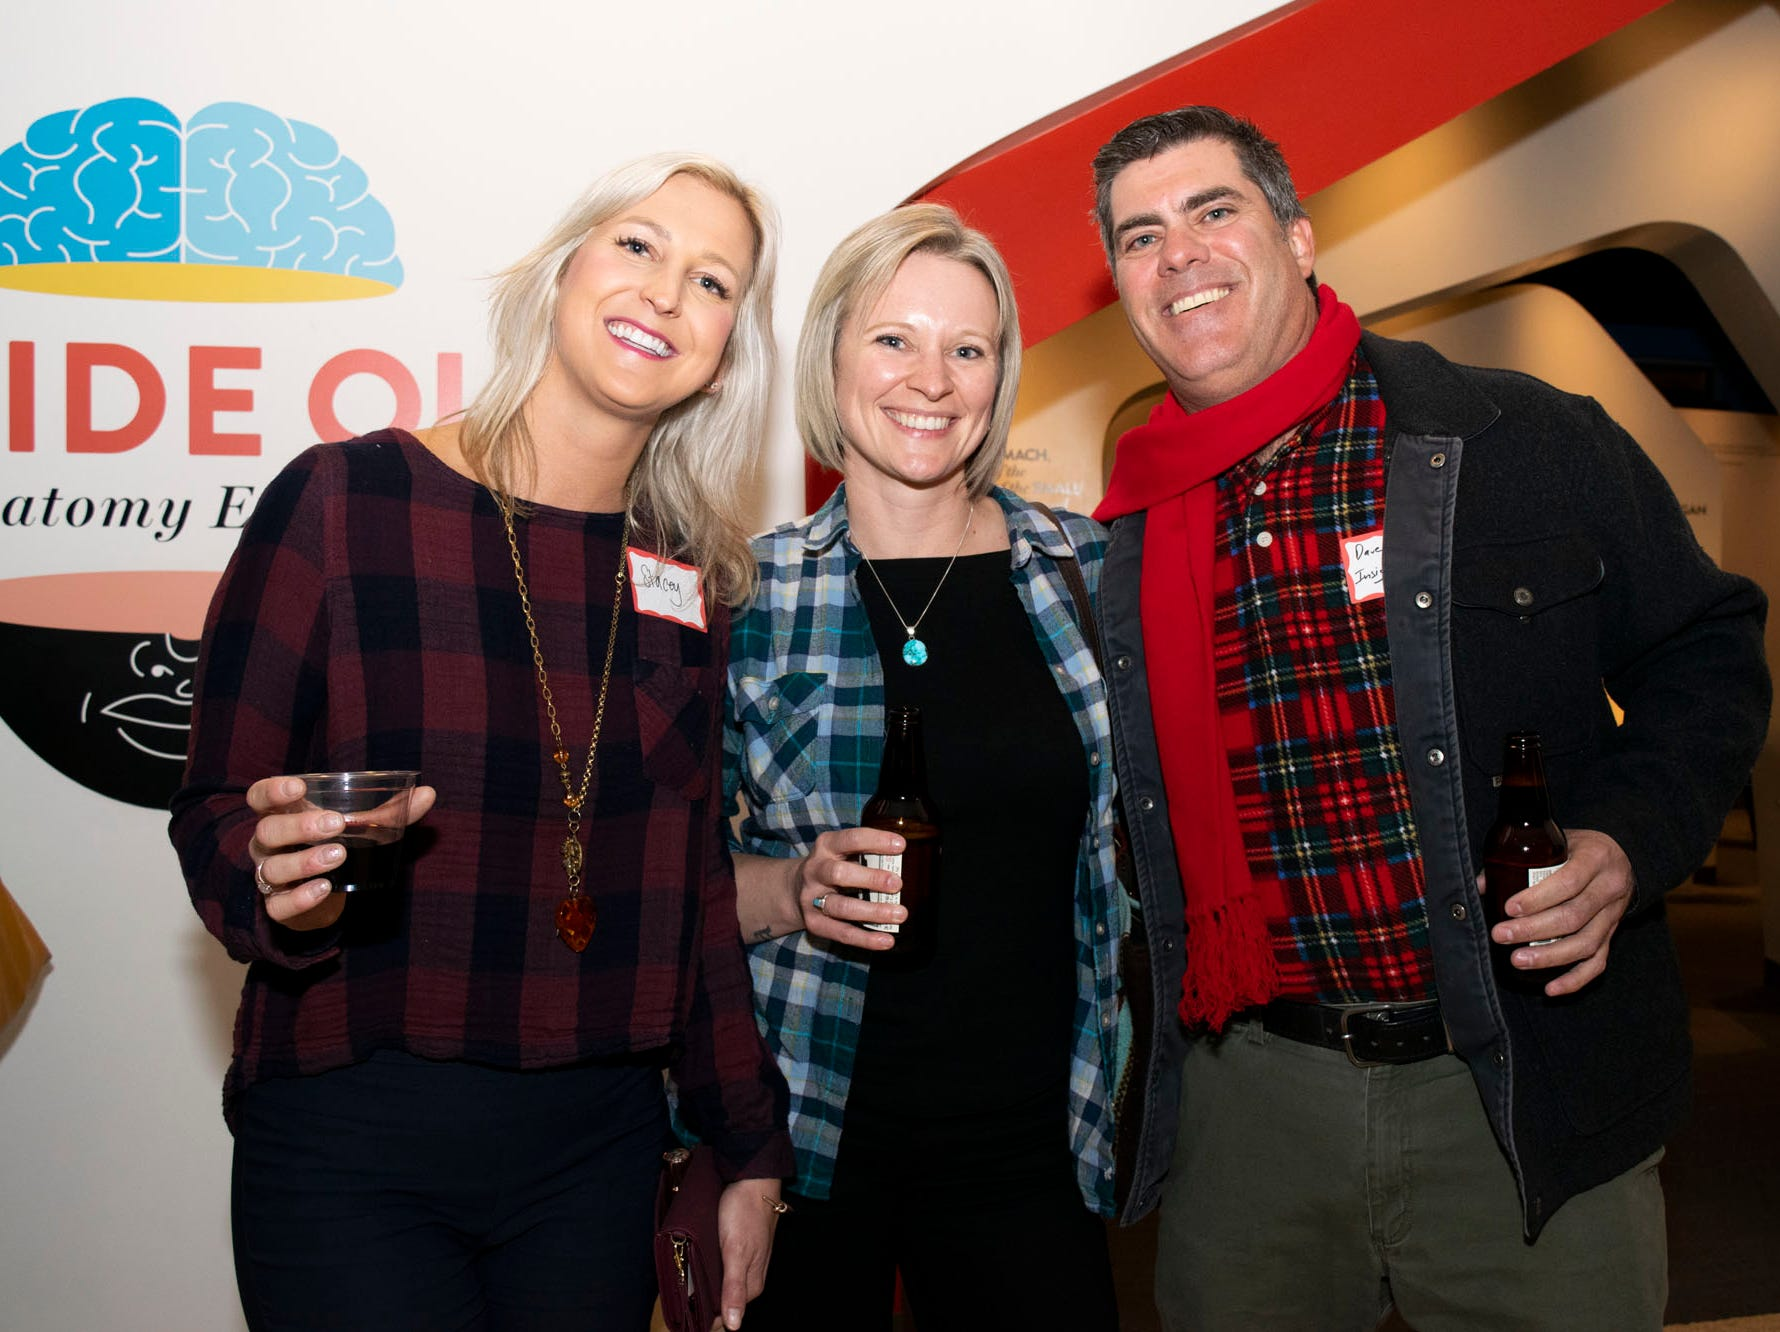 Stacey Sunday, Kristin McClellan, and Dave Siegal attend Mingle Bells 2018 at the Discovery Museum on Thursday, Dec. 6, 2018. Reno, Nev.